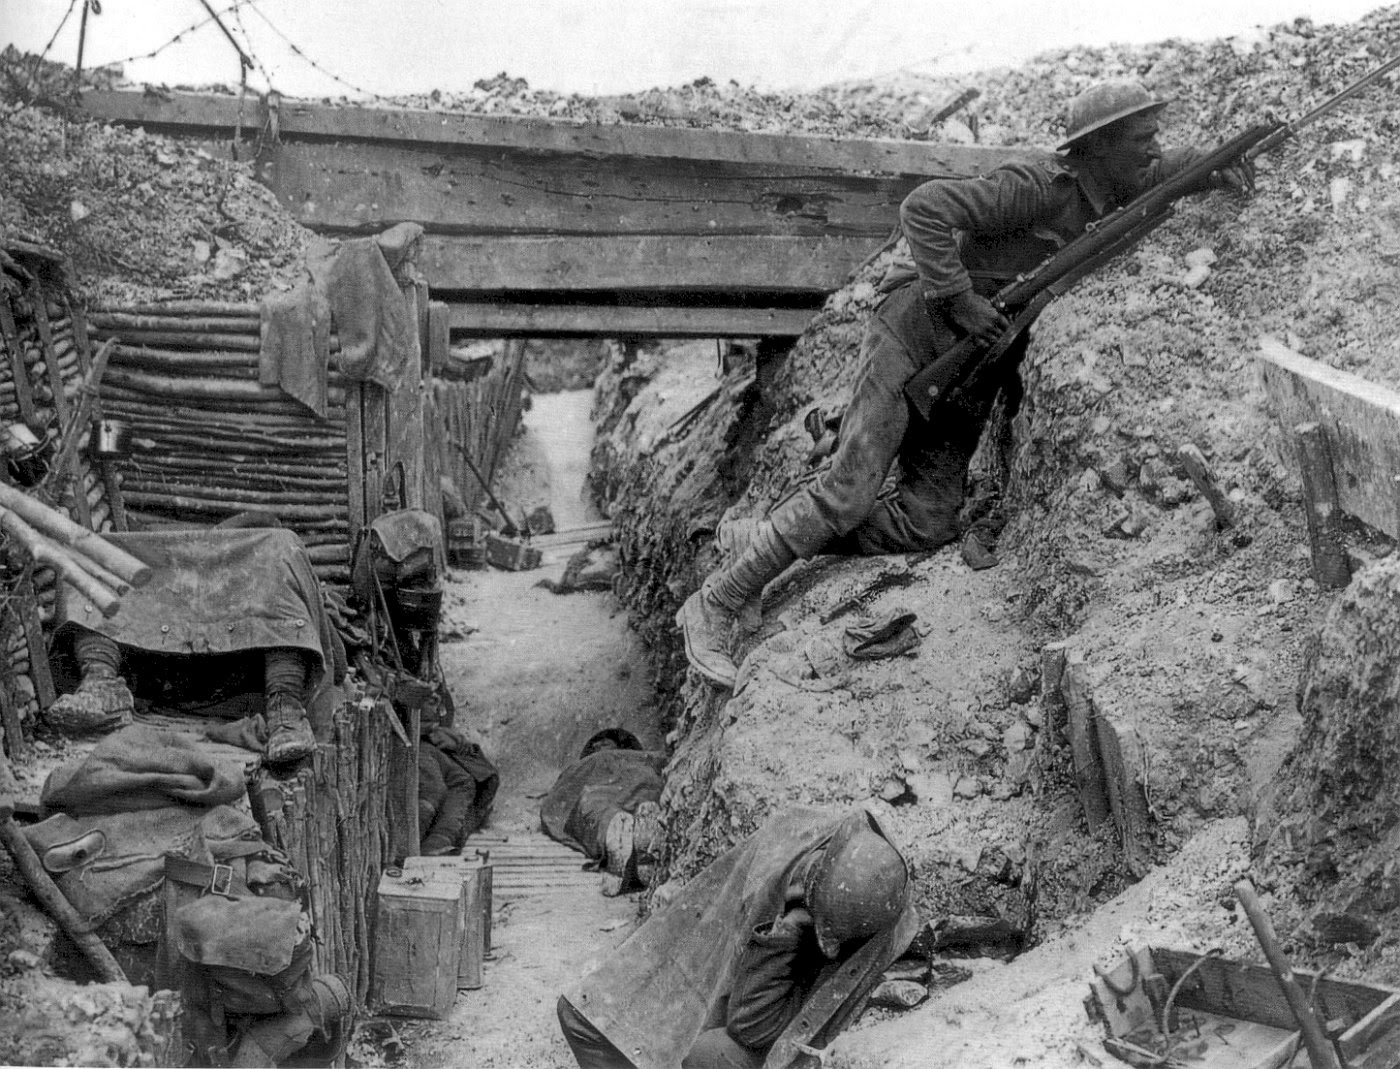 history level blog the first world war other pros of trench warfare included easy access to supplies and food spare ammunition and guns and quarters were the iers could rest